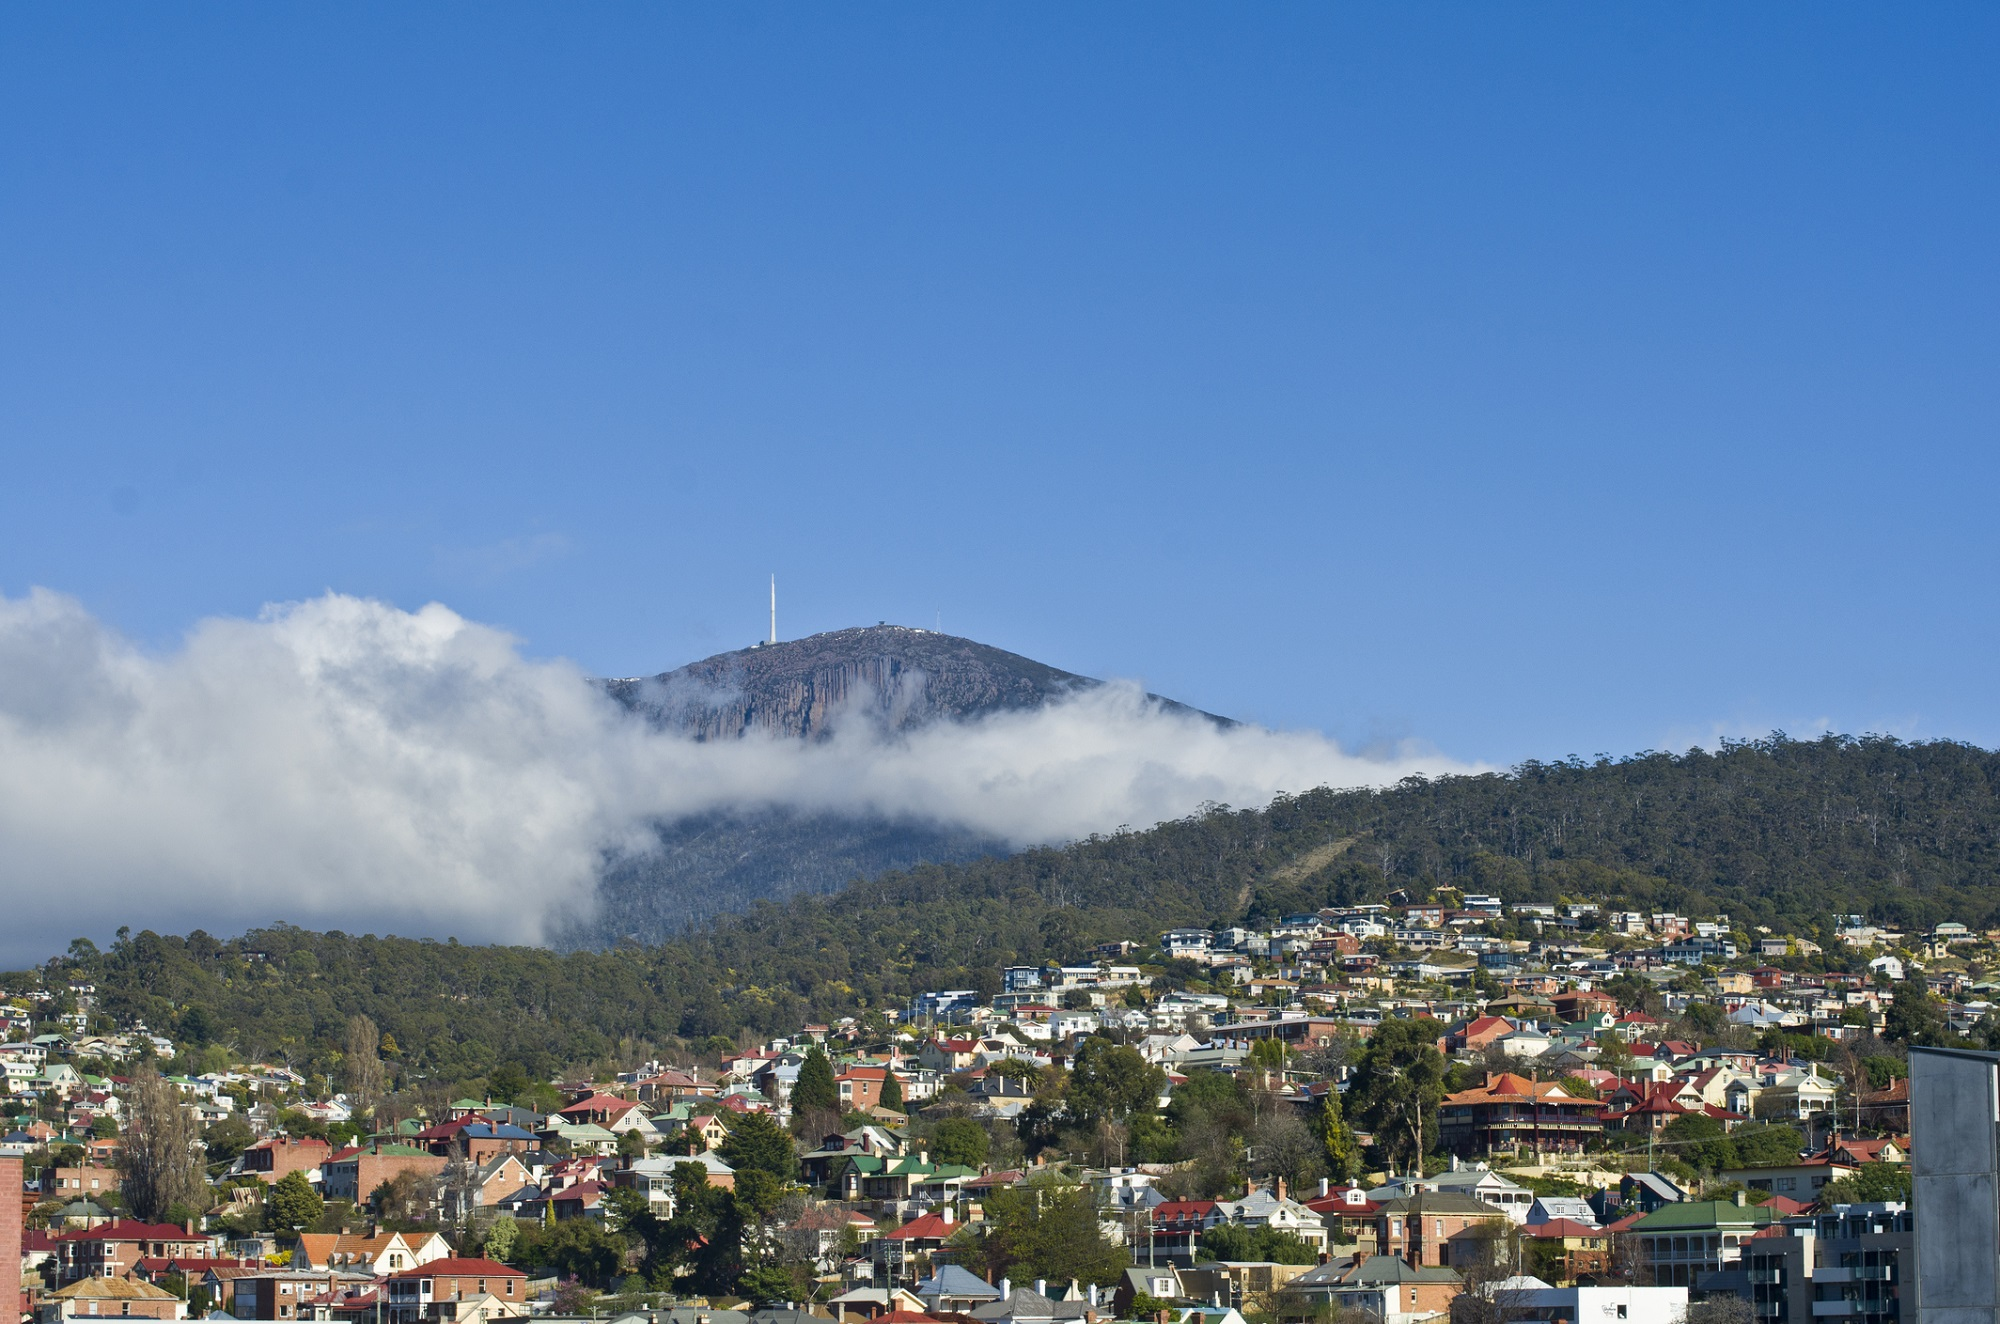 Hobart, looking towards Mount Wellington, Tasmania, Australia